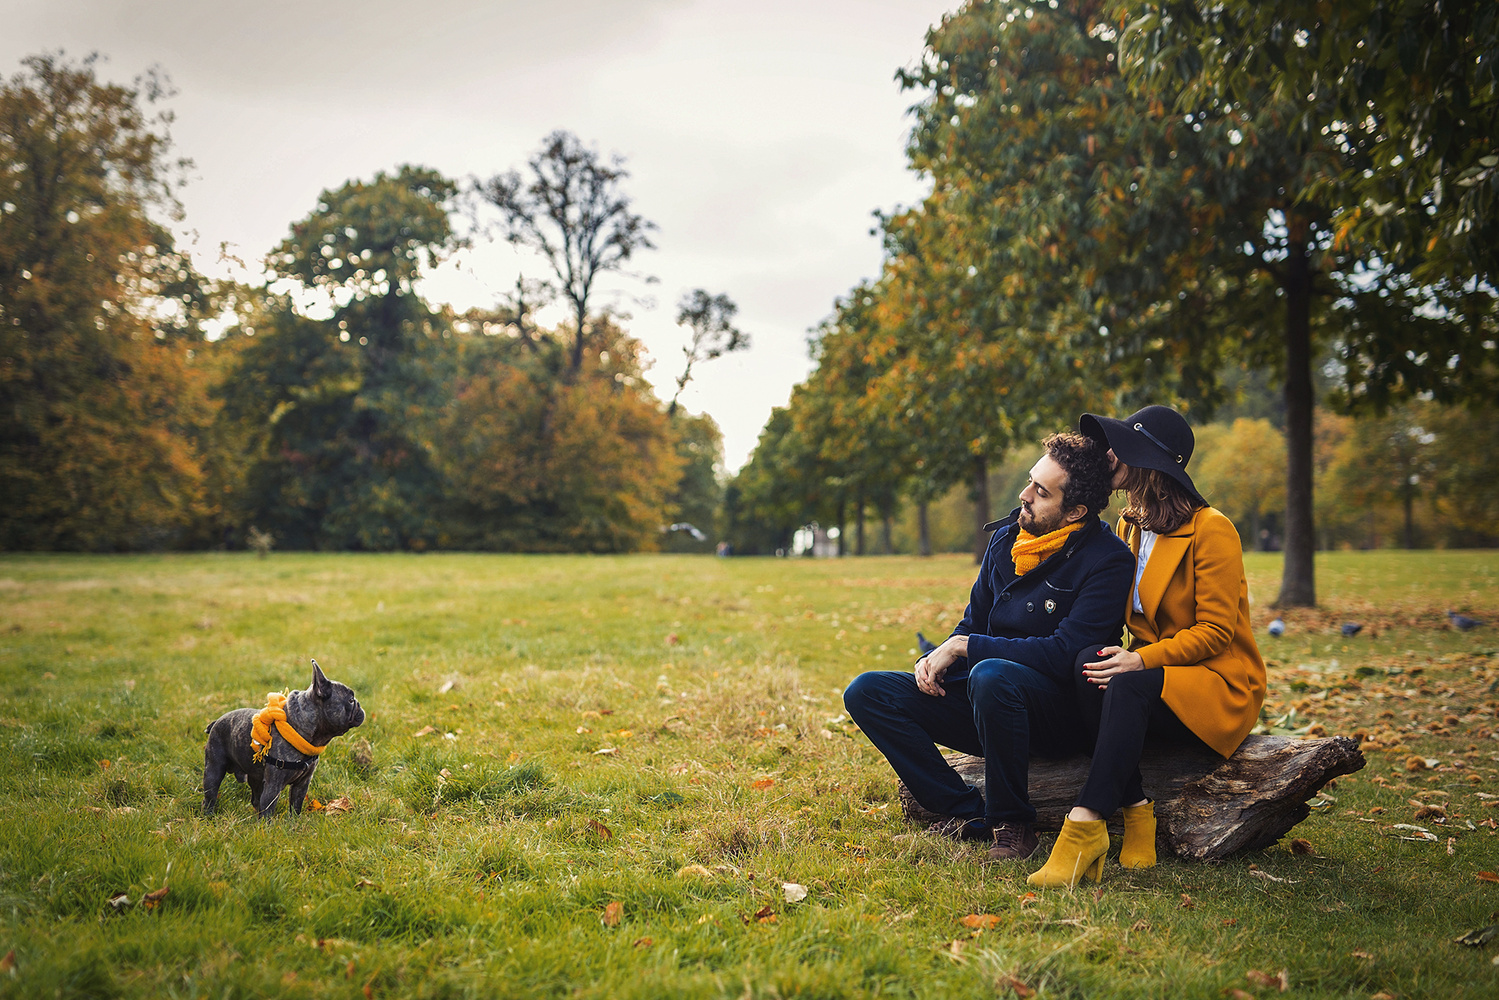 Autumn Family Portrait by Yulia Oliver-Taylor